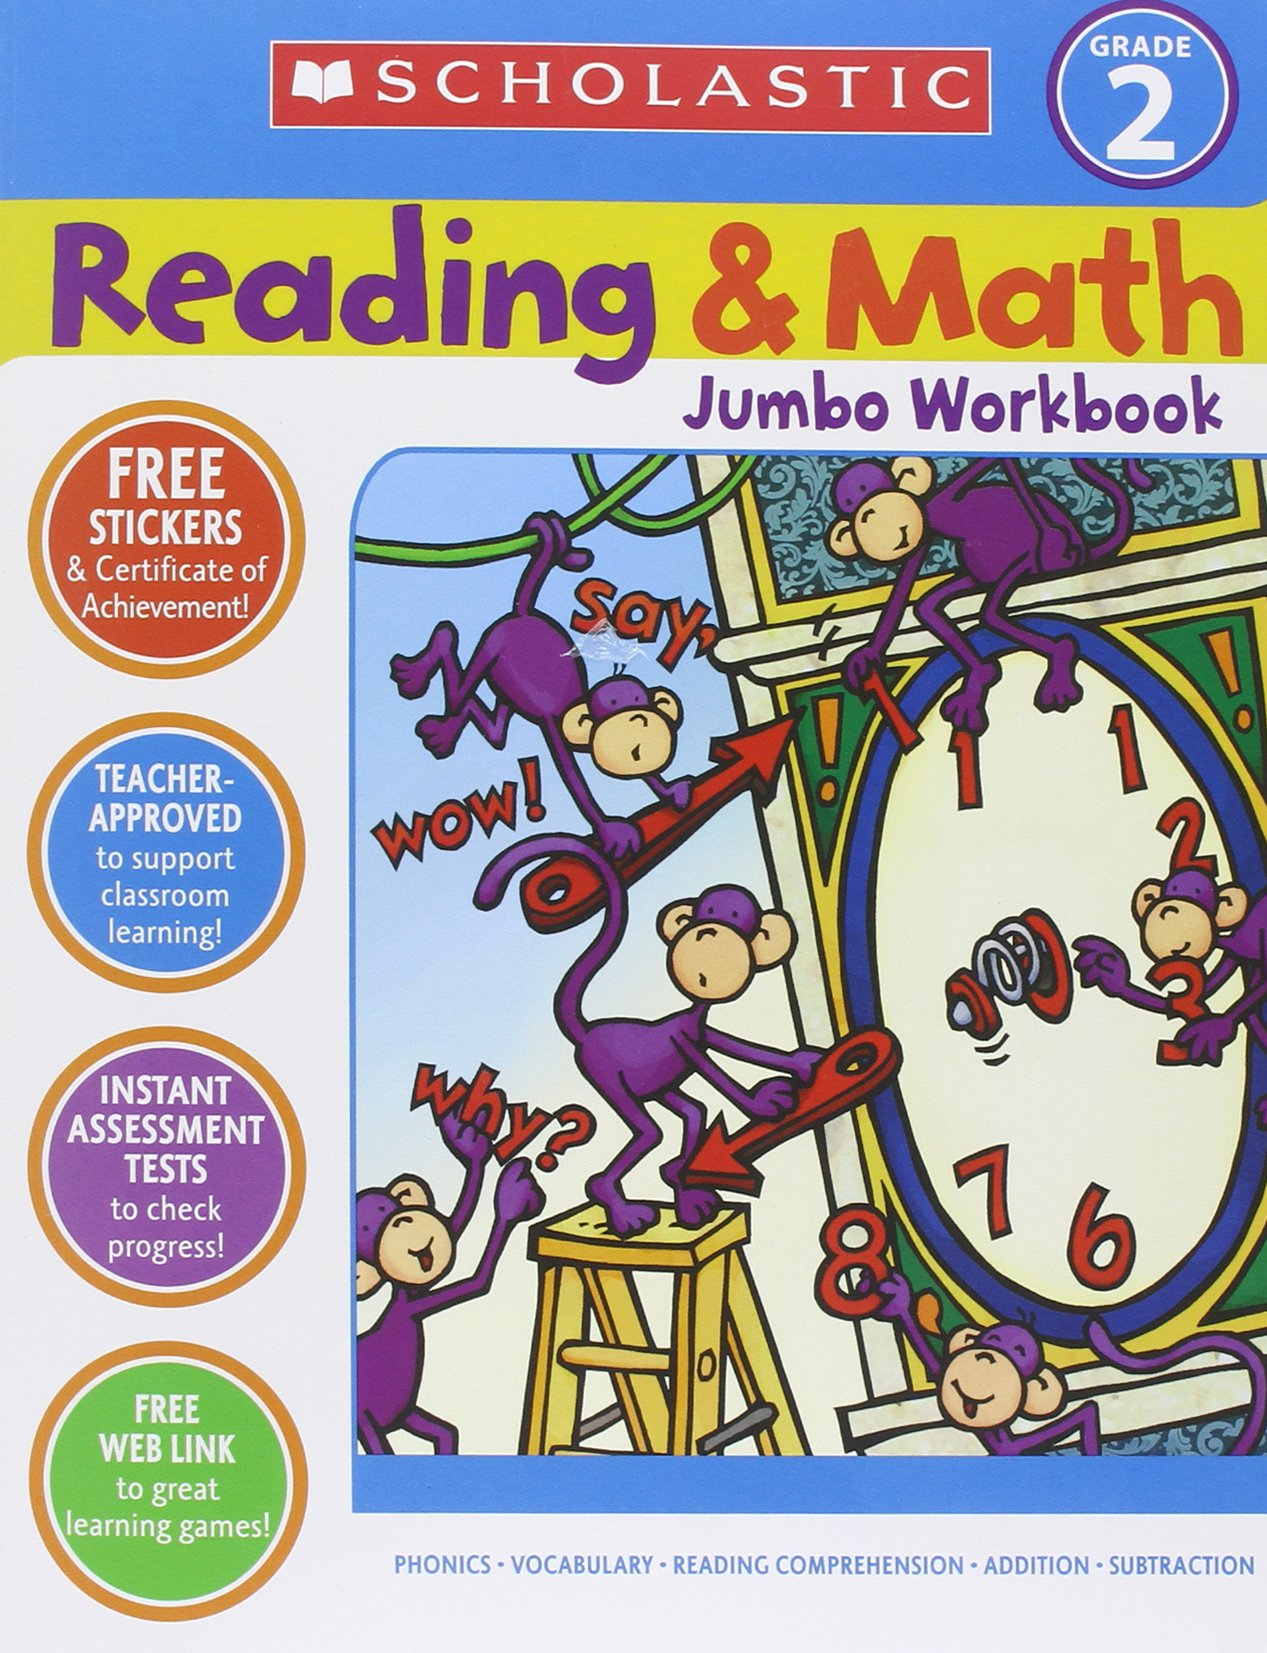 Image OfReading & Math Jumbo Workbook: Grade 2